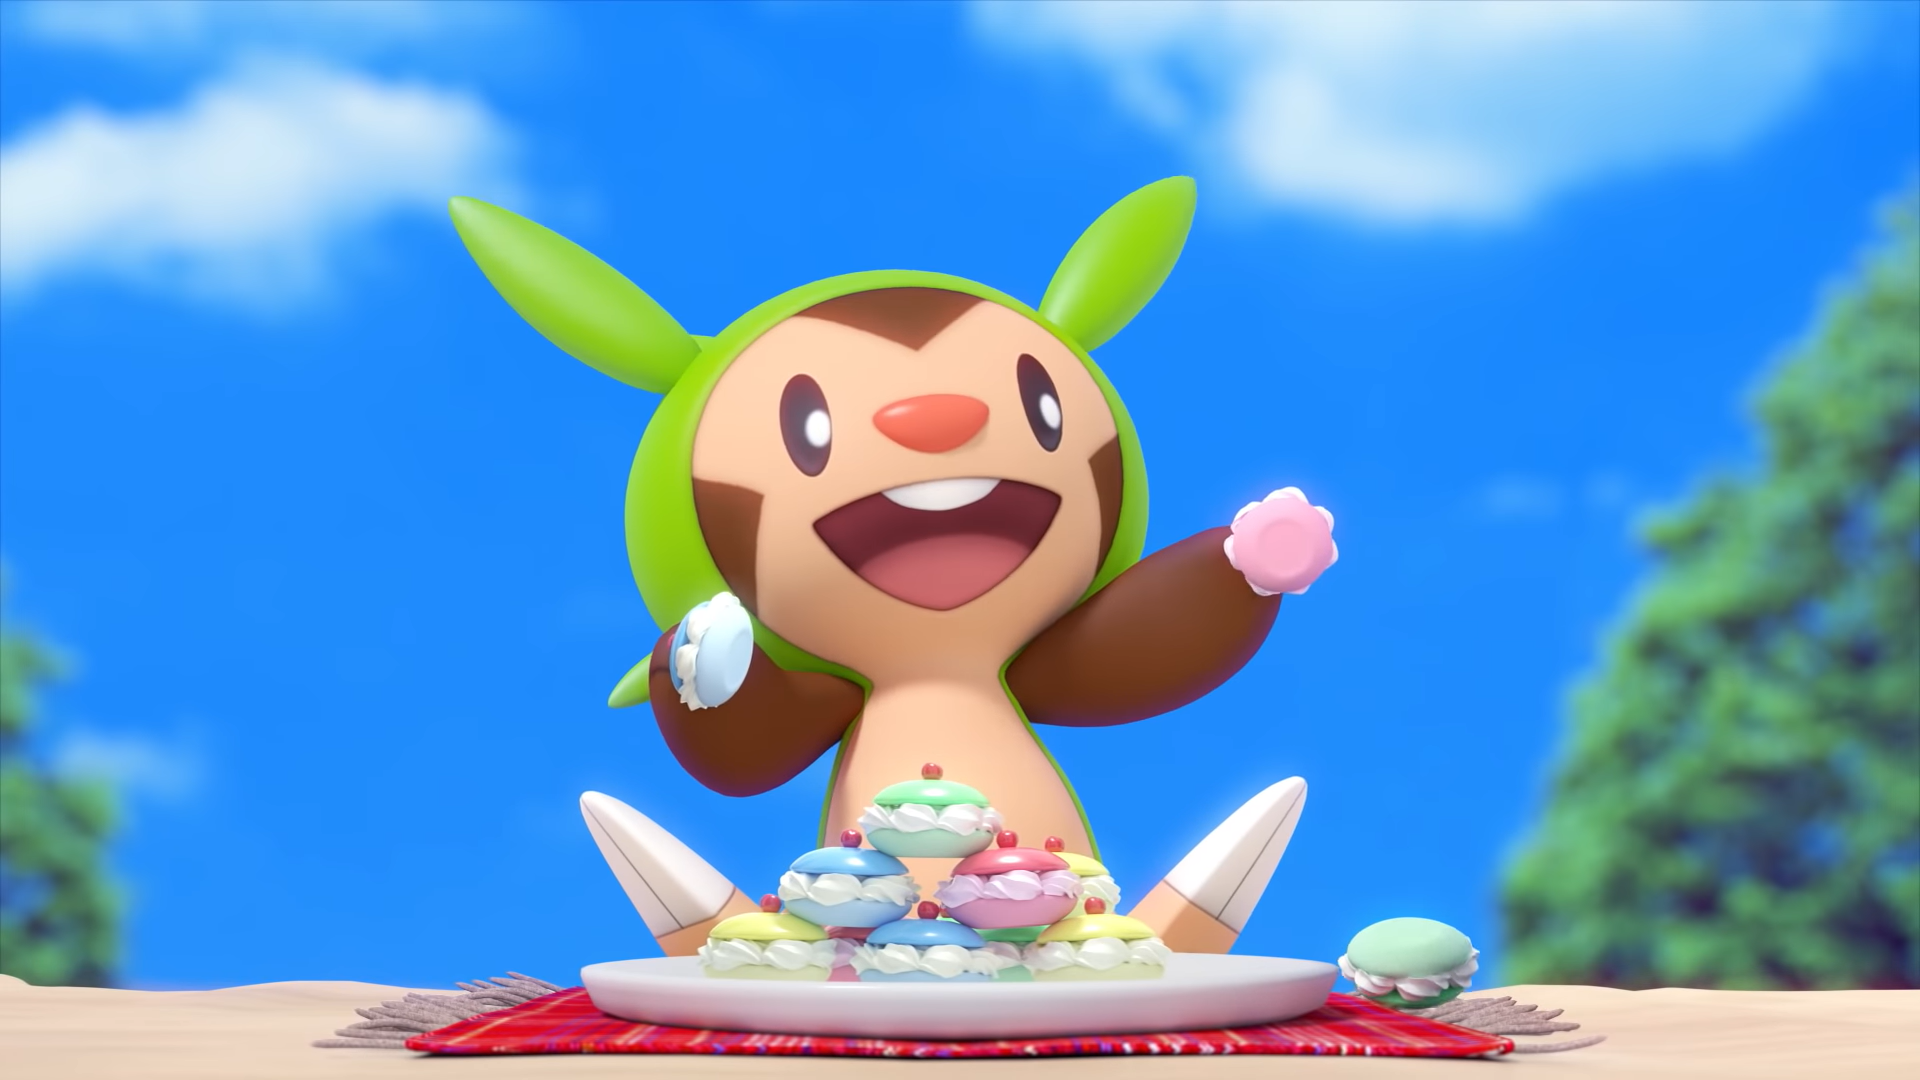 Pokémon Chespin eating little, colorful cookies